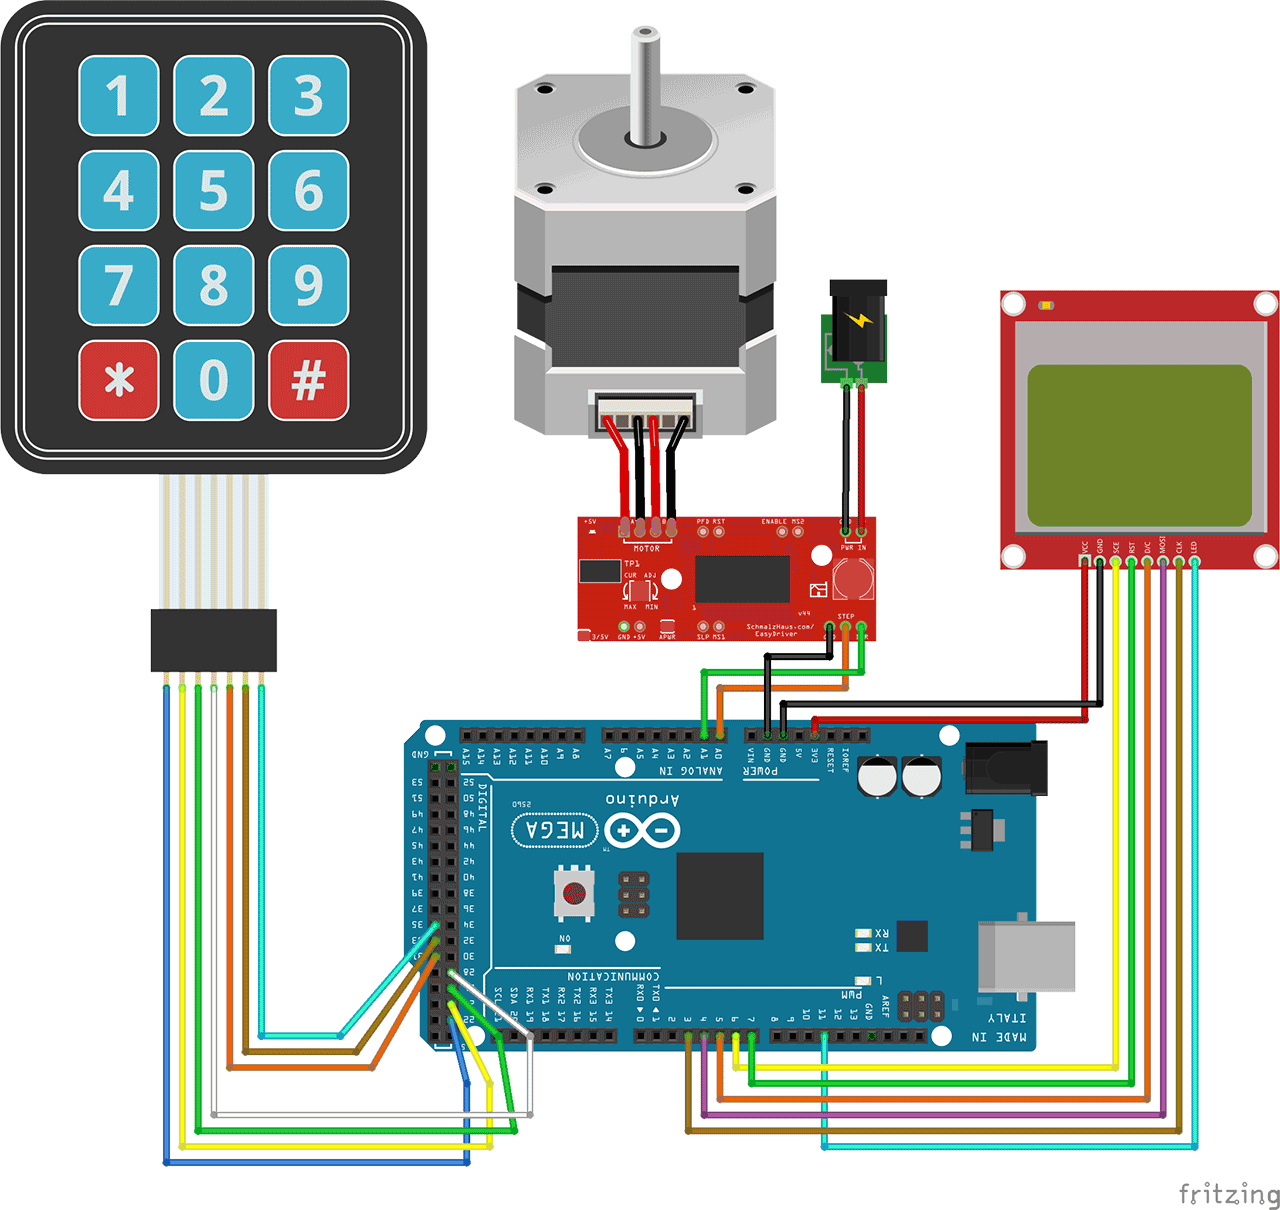 hight resolution of let s control the movement of a stepper motor by entering a value in millimeters using an arduino a keypad and display the position on a nokia lcd